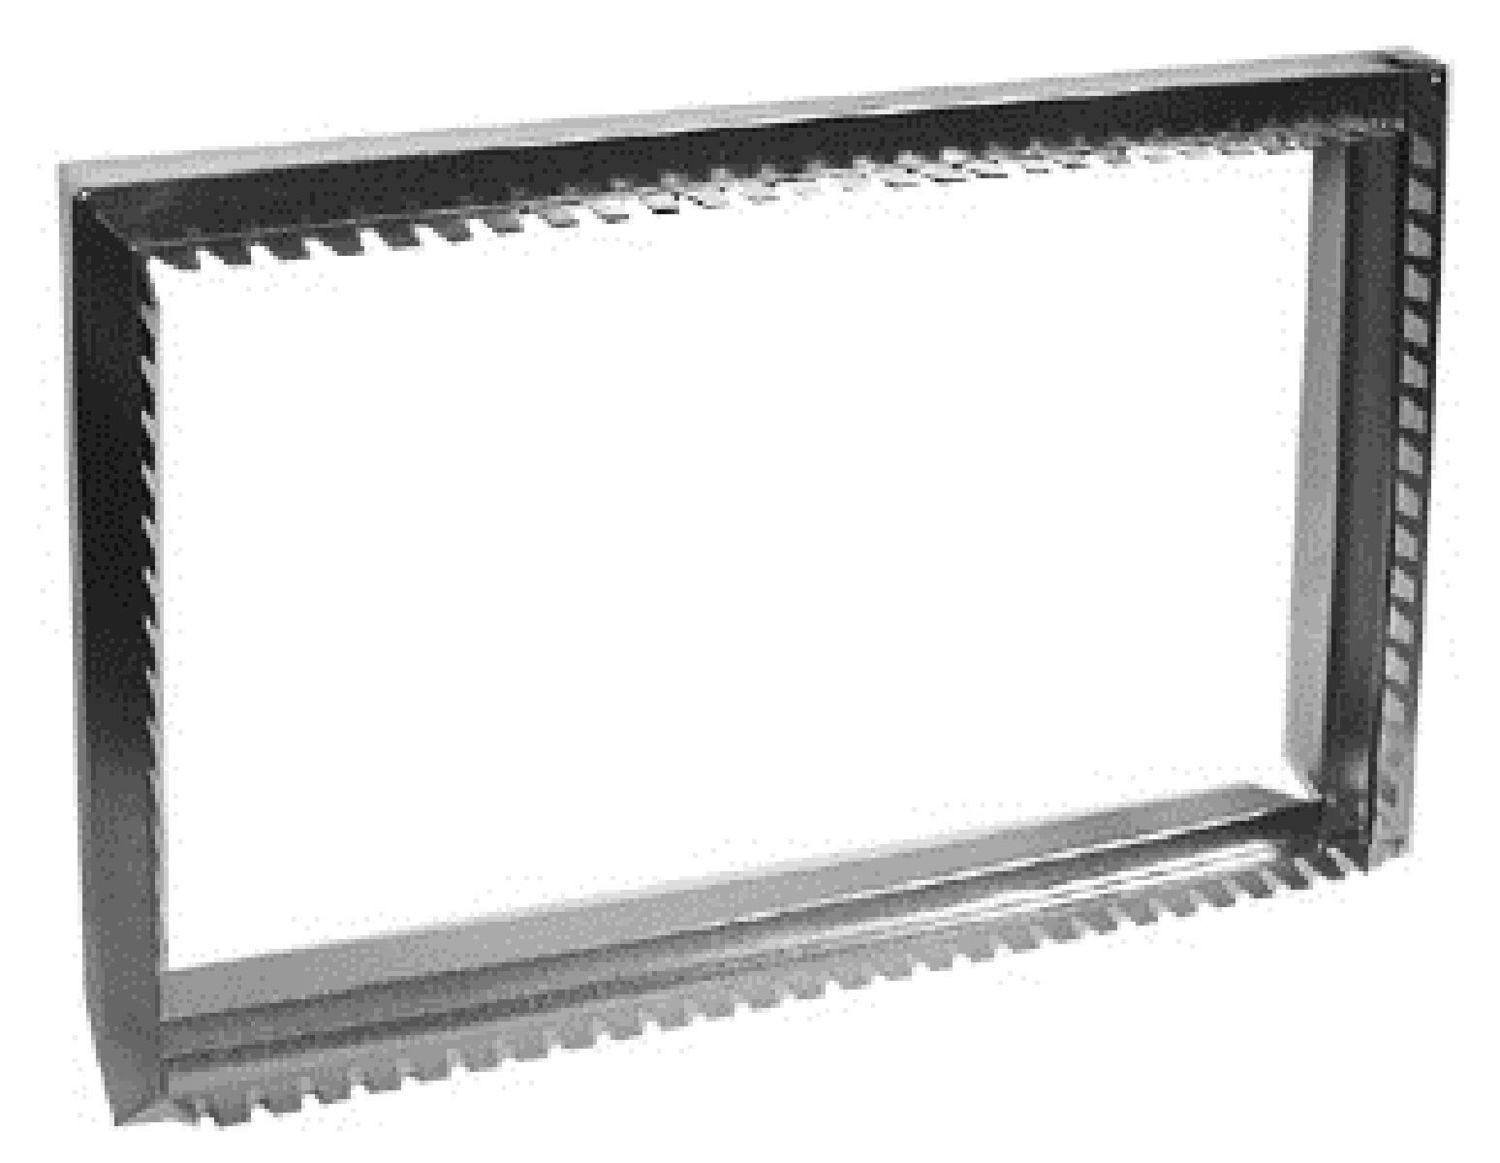 Filter Rack Package for Commercial Packaged Product